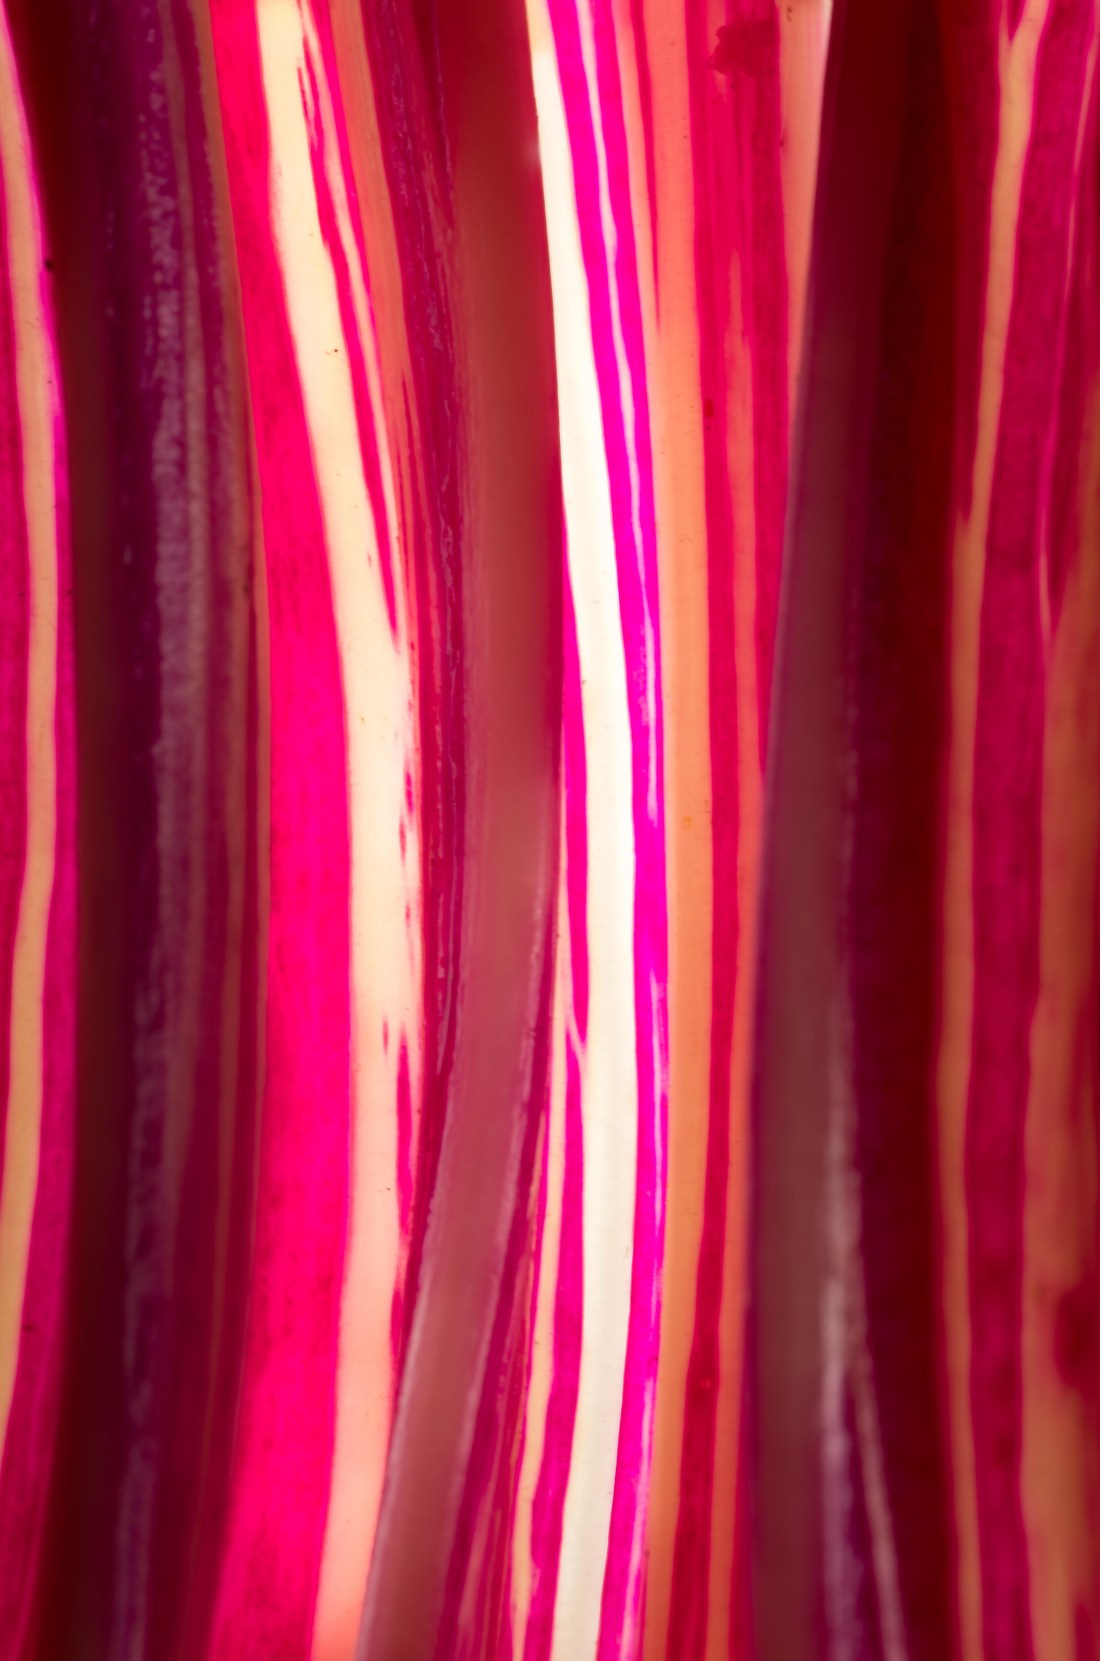 Rainbow Chard stems by Marius Grose